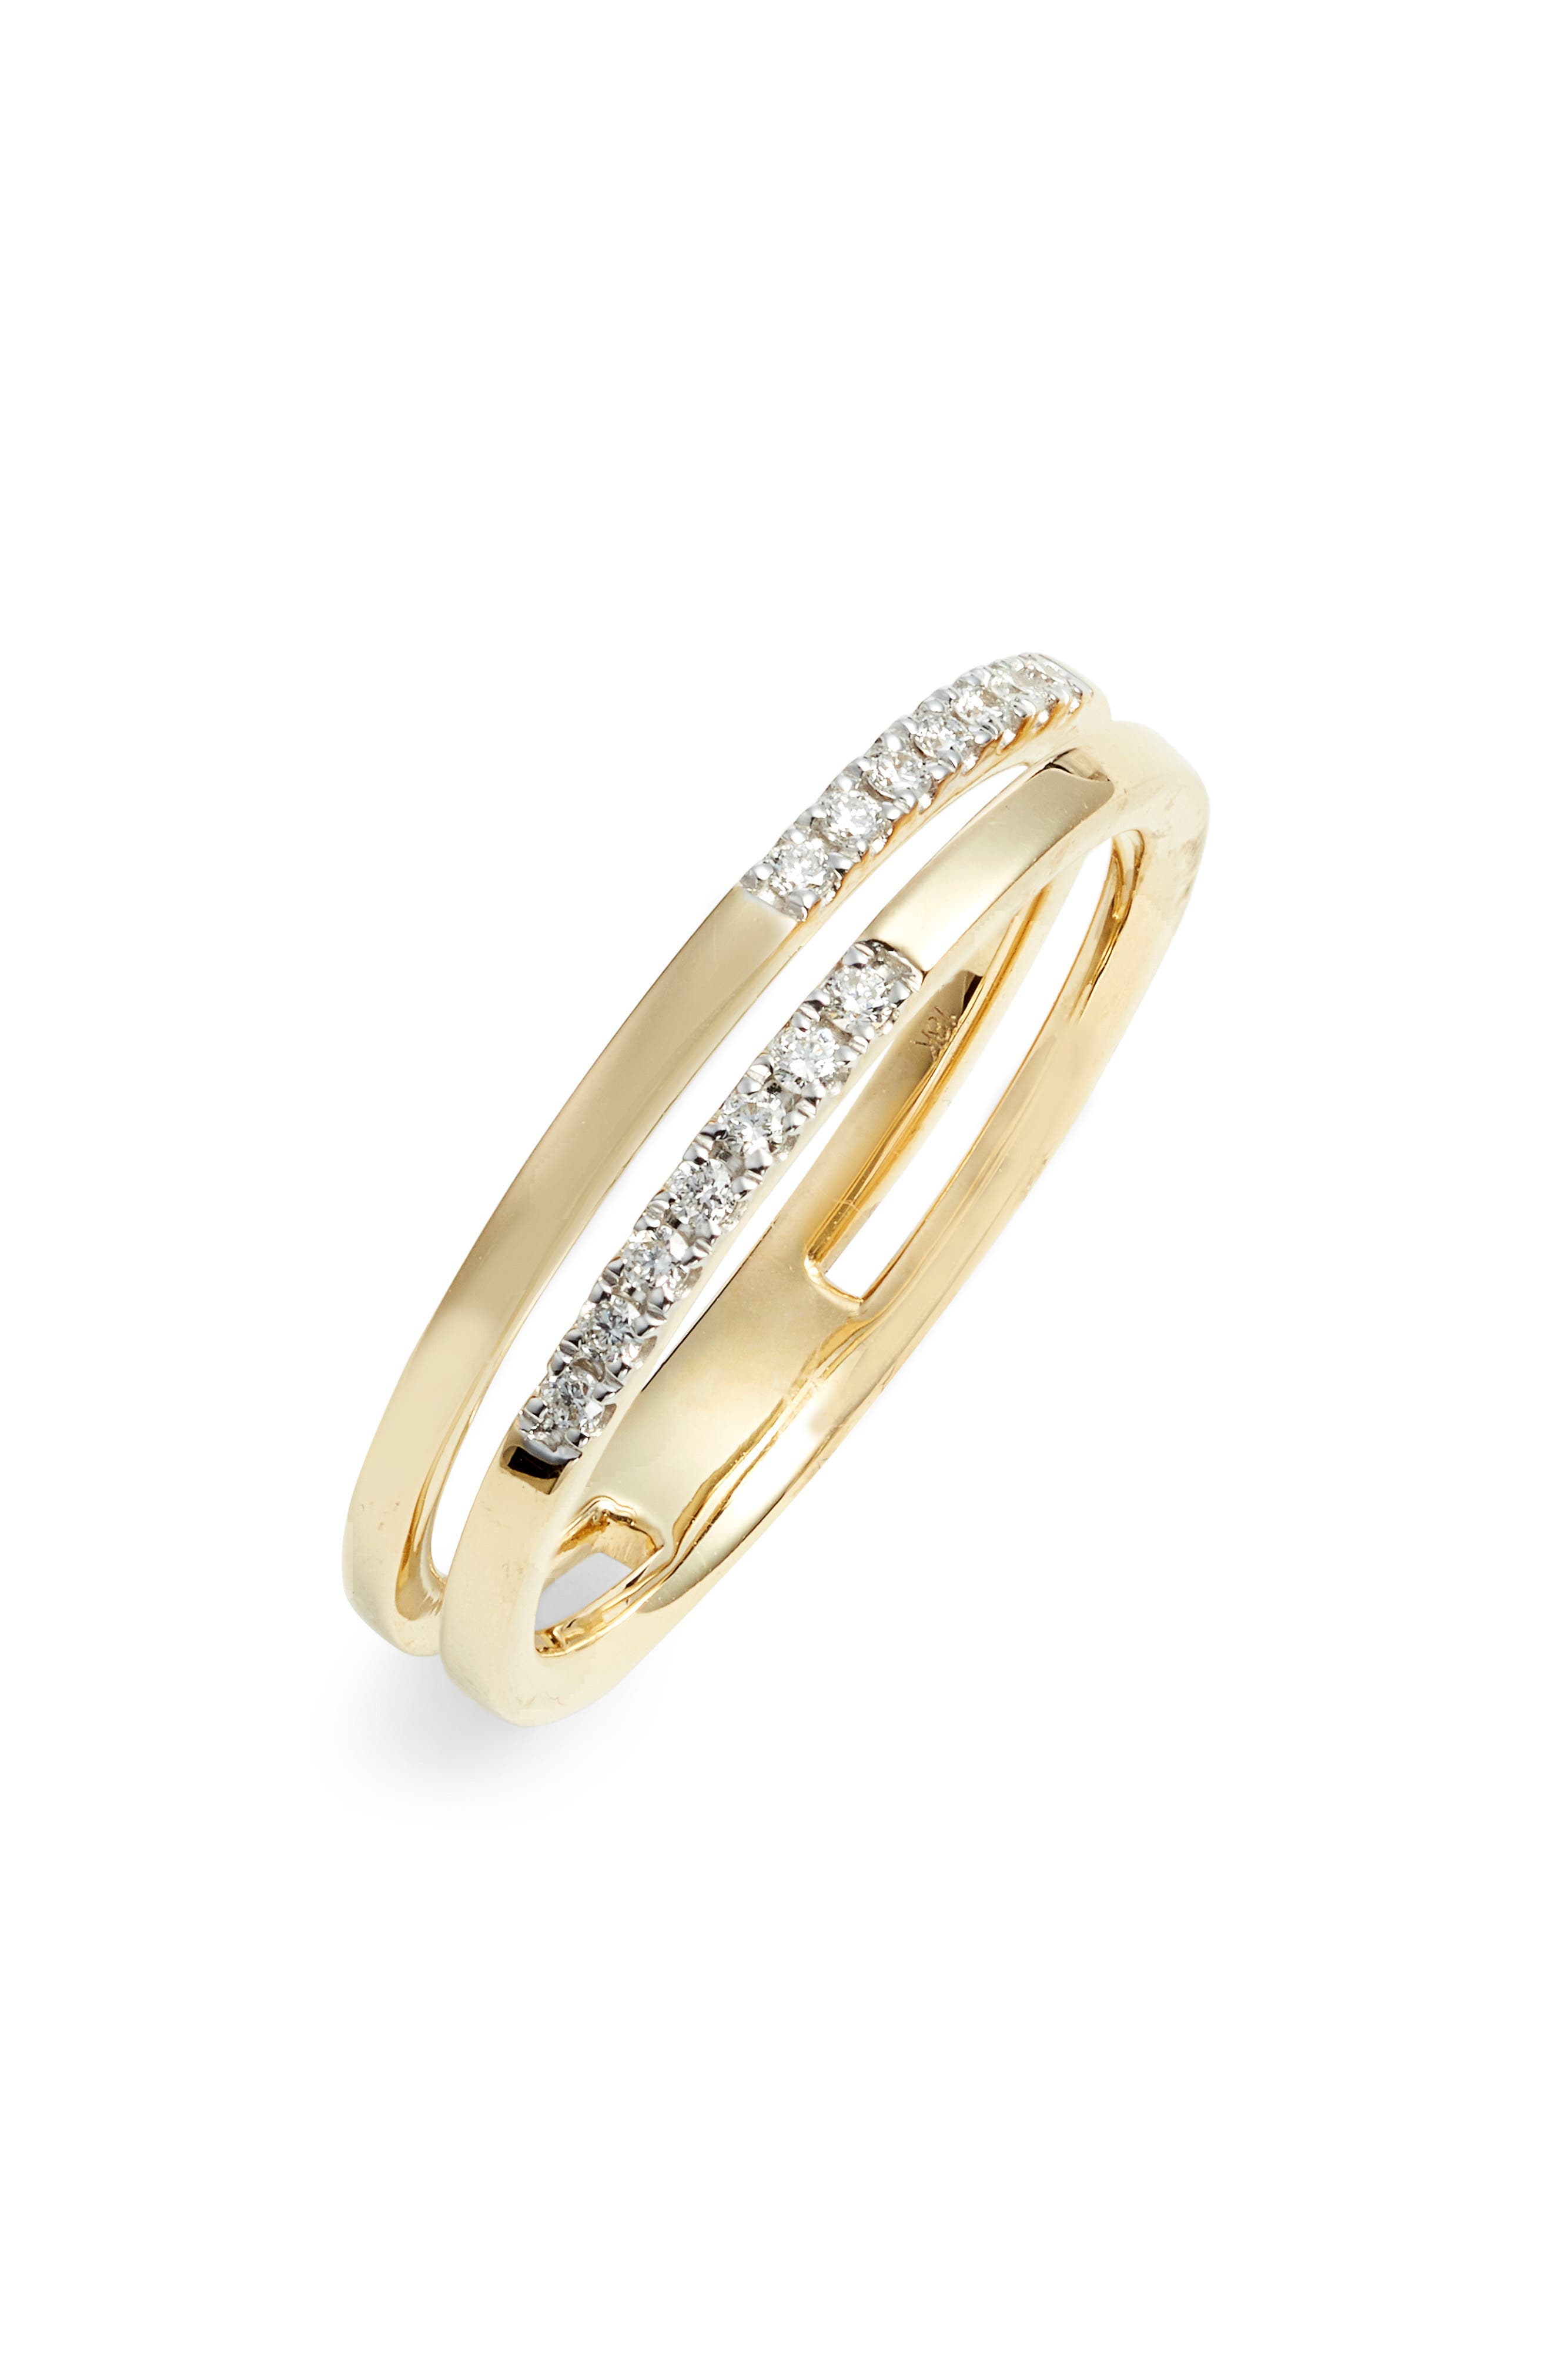 Diamond Double Stack Ring,                             Main thumbnail 1, color,                             YELLOW GOLD/ DIAMOND